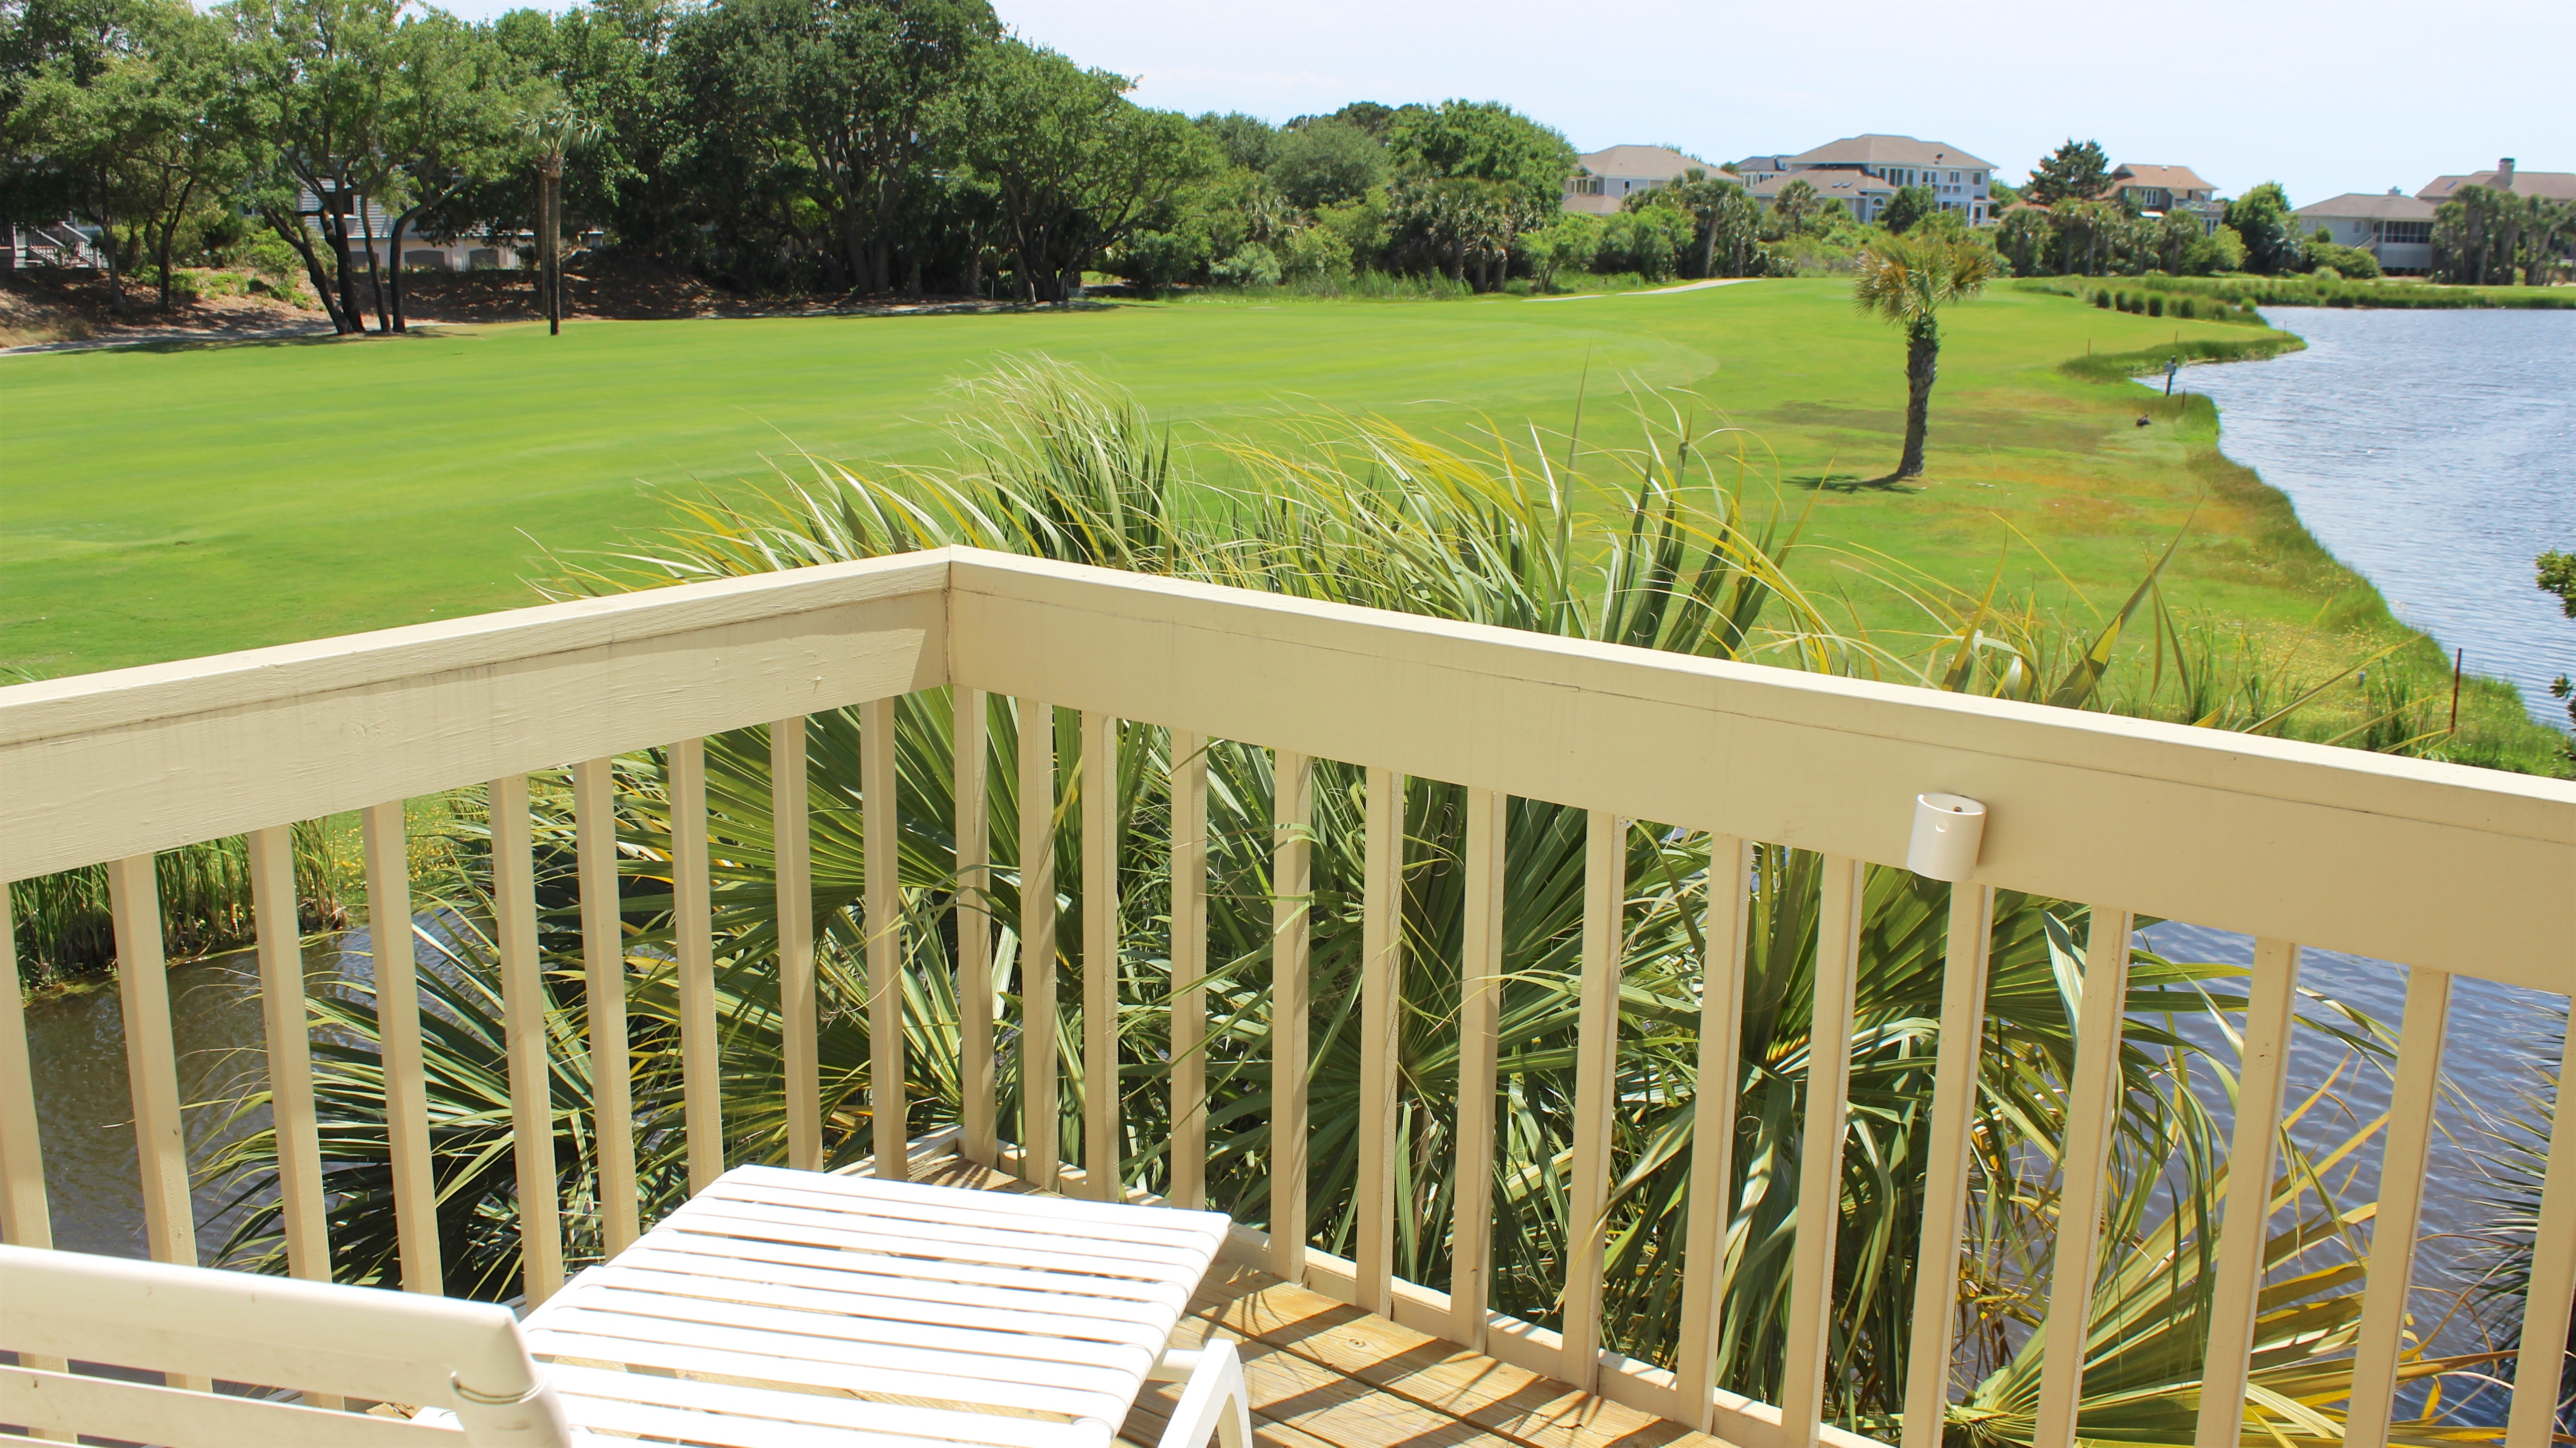 The deck has two lounge chairs perfect for catching the afternoon sun.